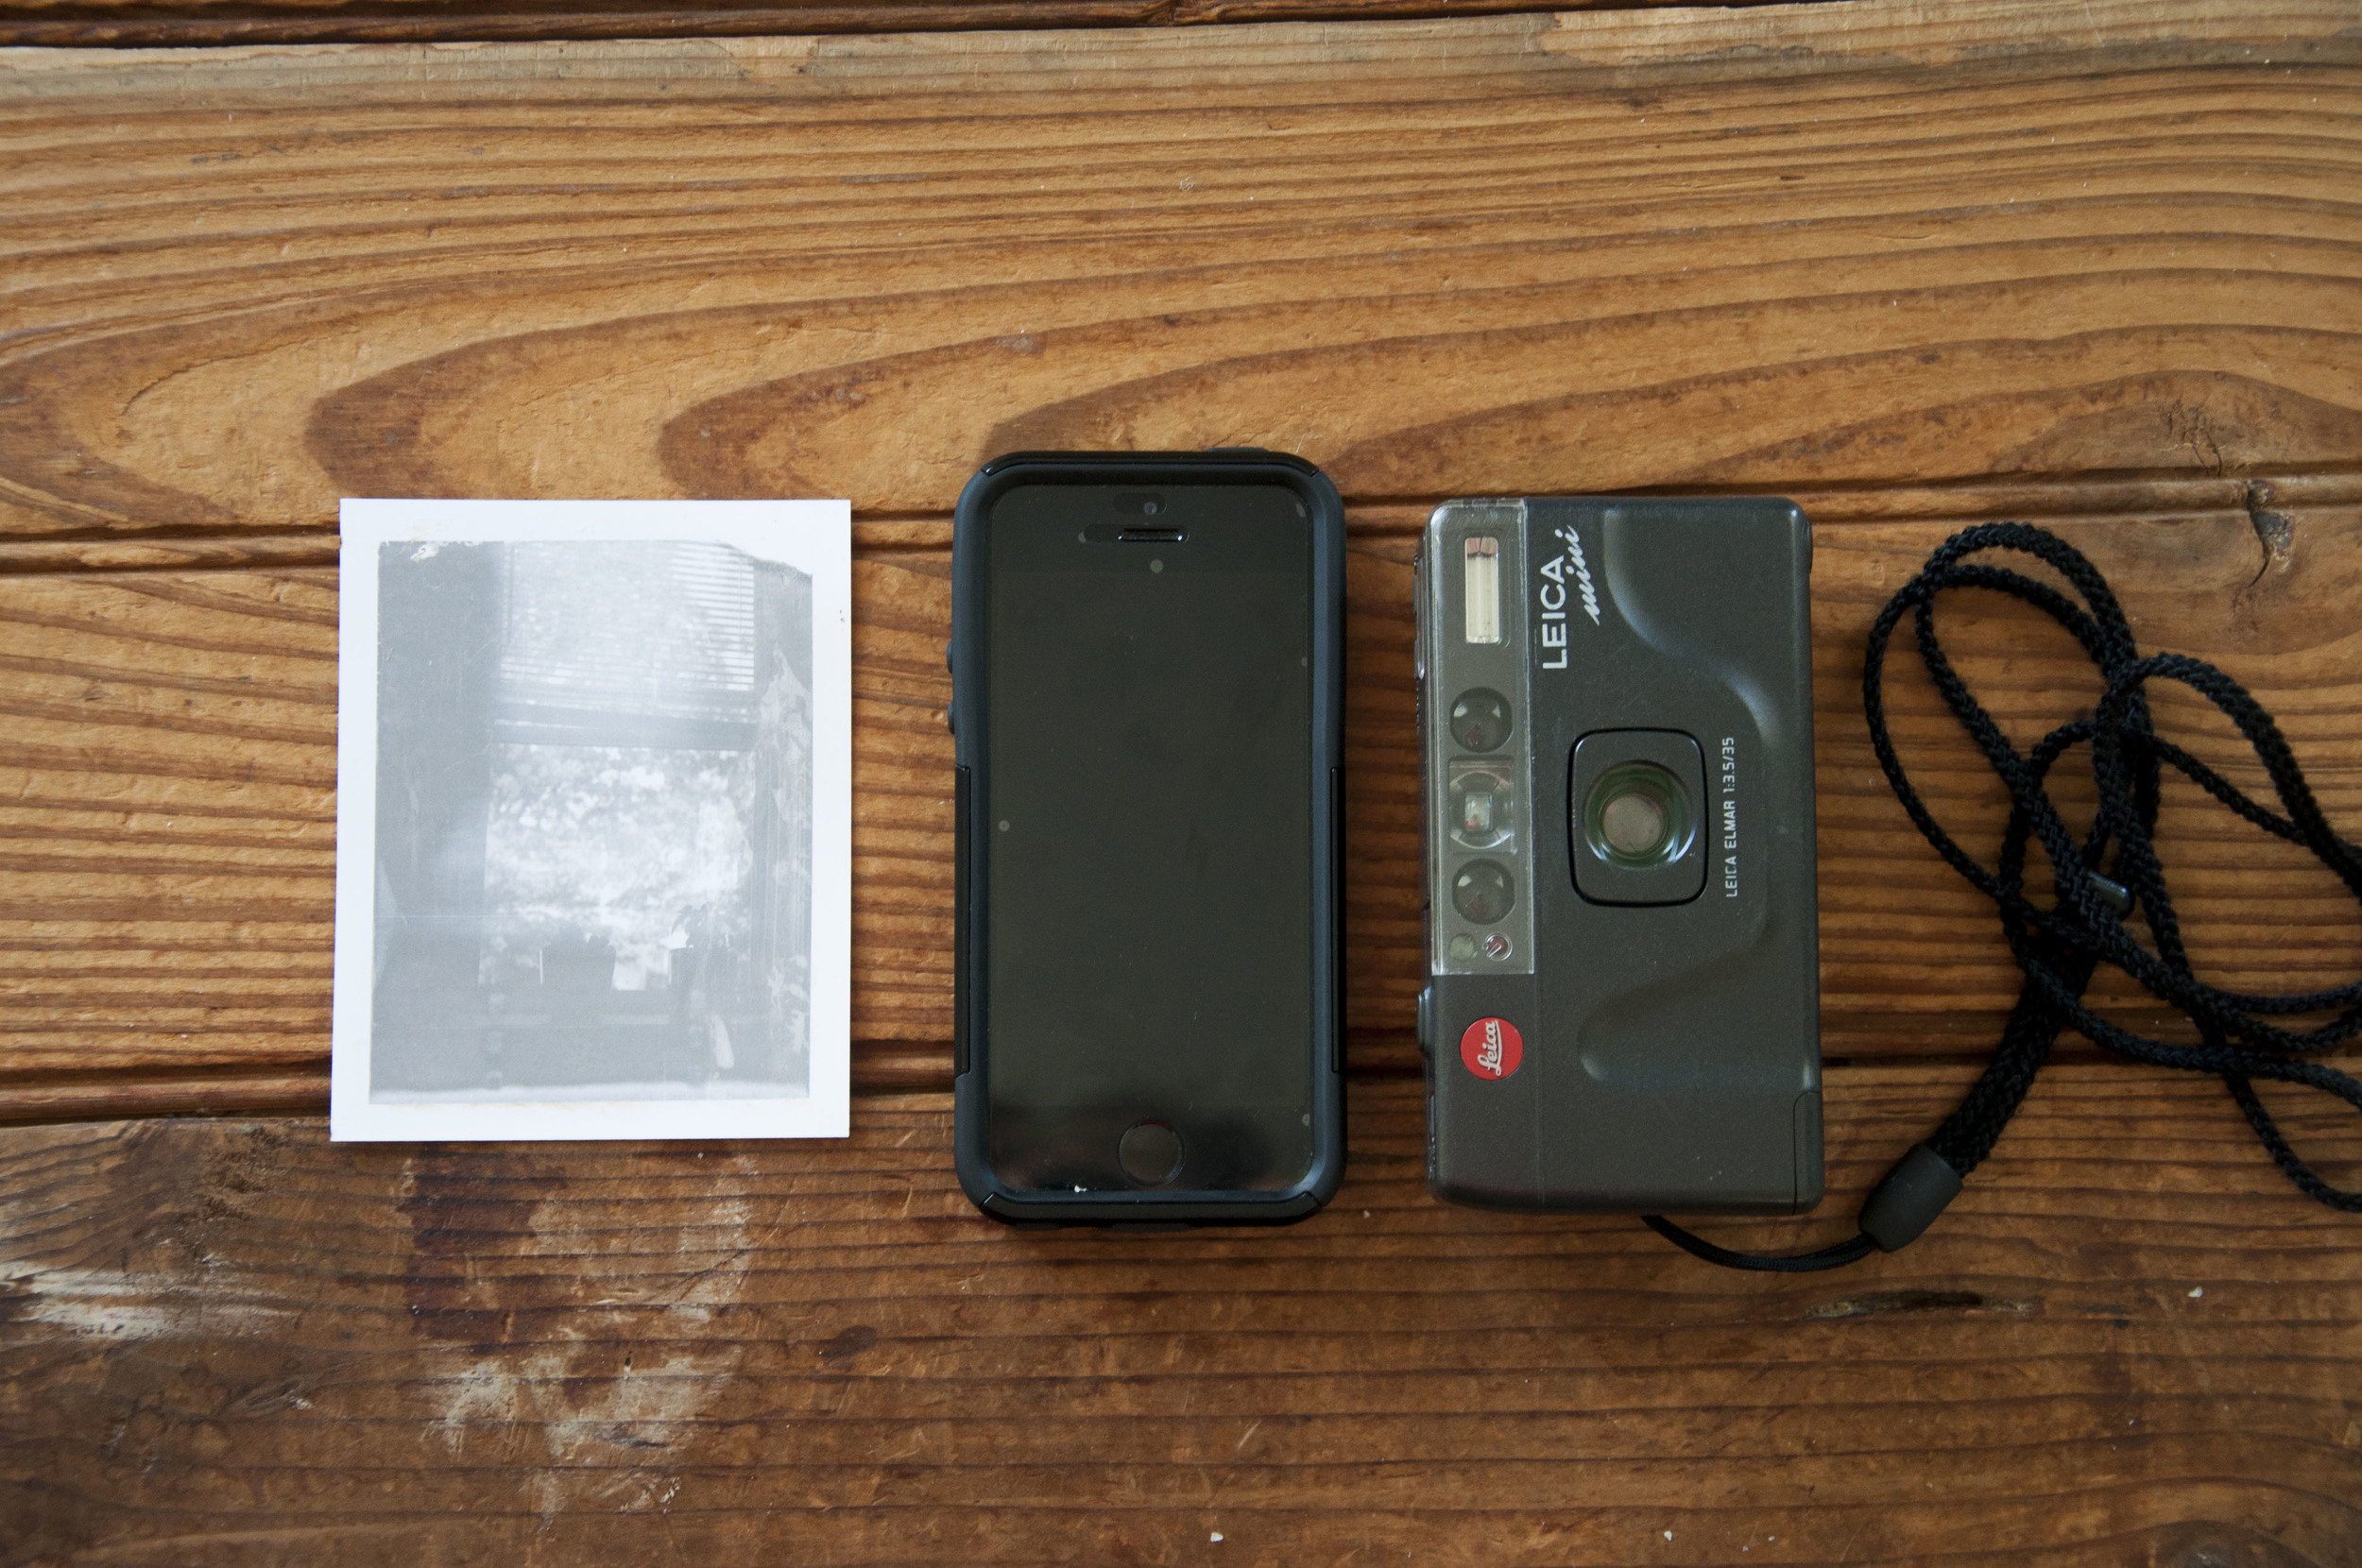 For size comparison, Polaroid Type 107 3 1/4x4 1/4 iPhone 5s and then the Leica mini